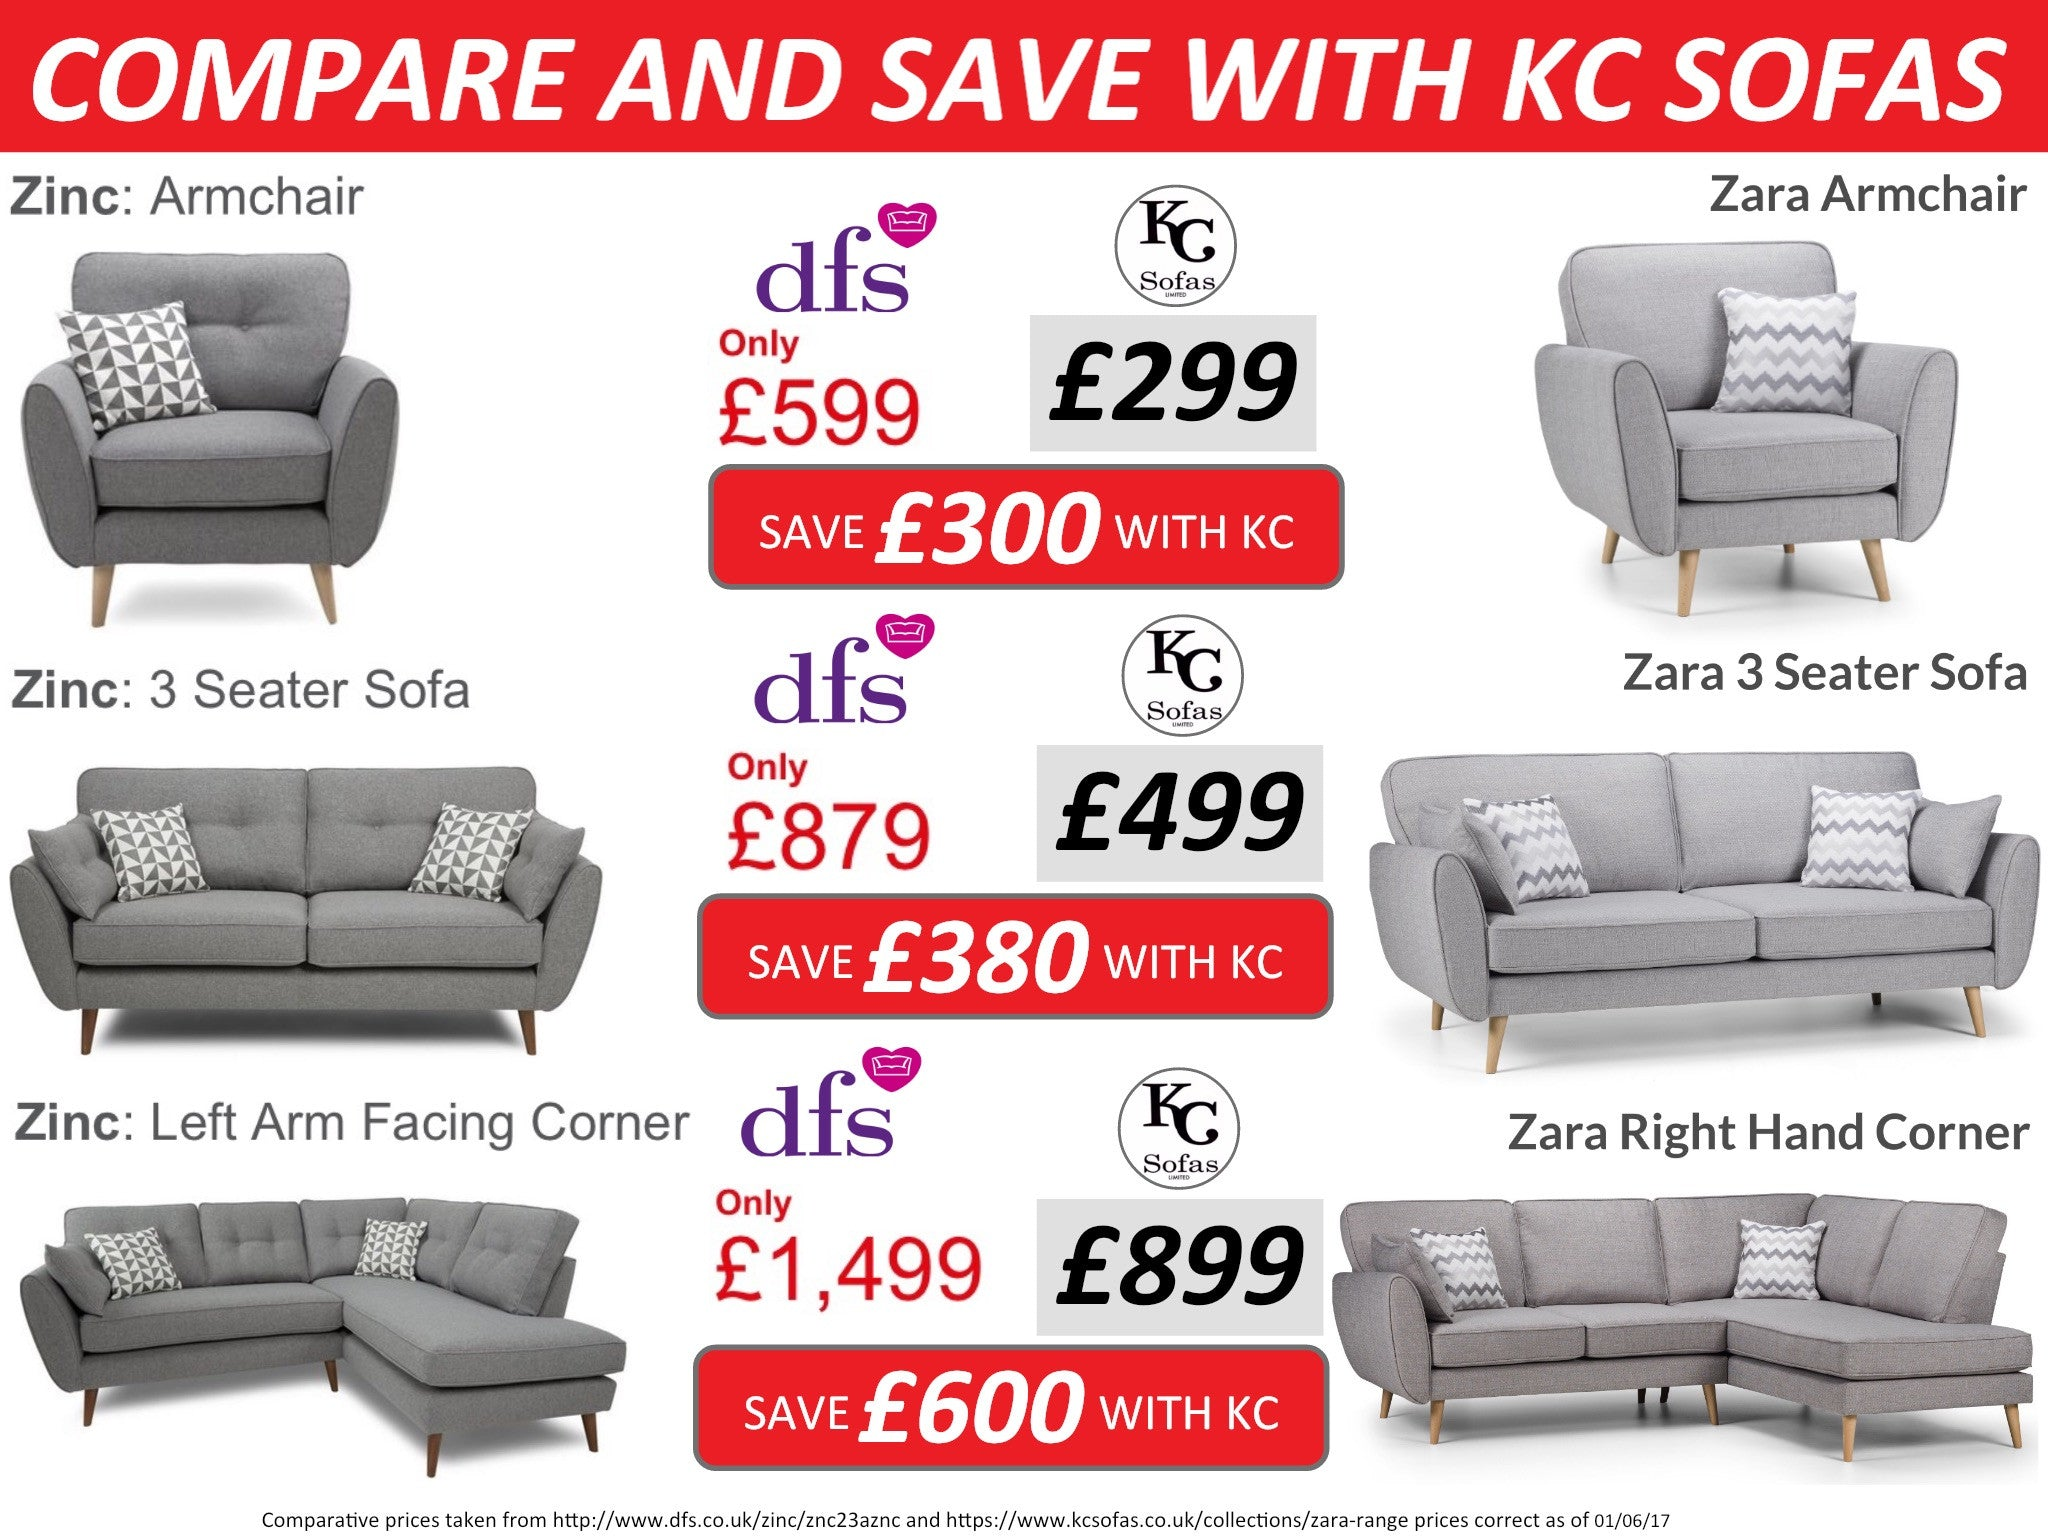 Compare and save! – KC Sofas